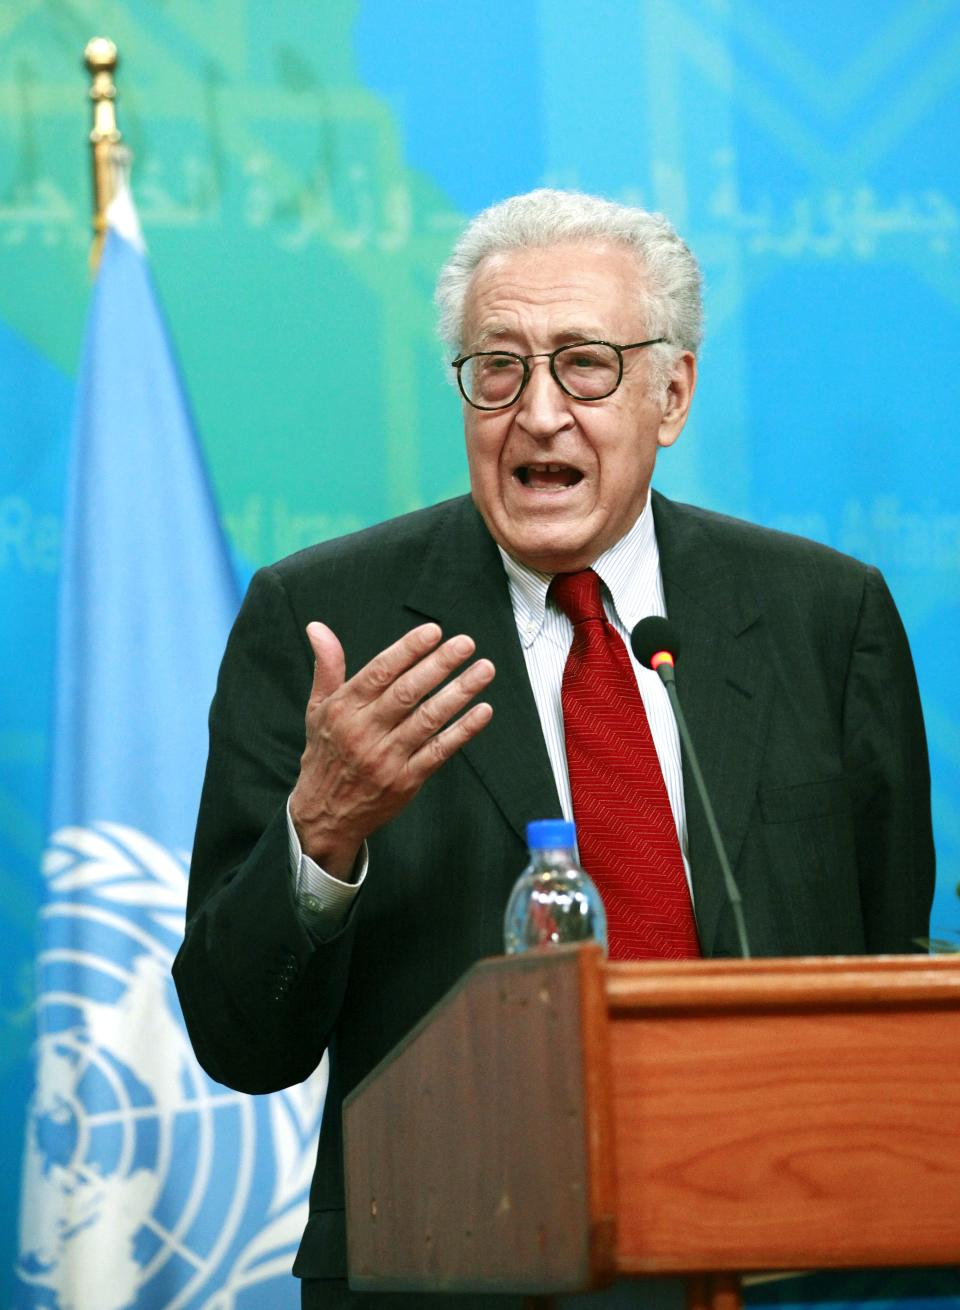 U.N. envoy on Syria, Lakhdar Brahimi speaks during a joint press conference with Hoshyar Zebari, unseen, in Baghdad, Iraq, Monday, Oct. 15, 2012. (AP Photo/Hadi Mizban)